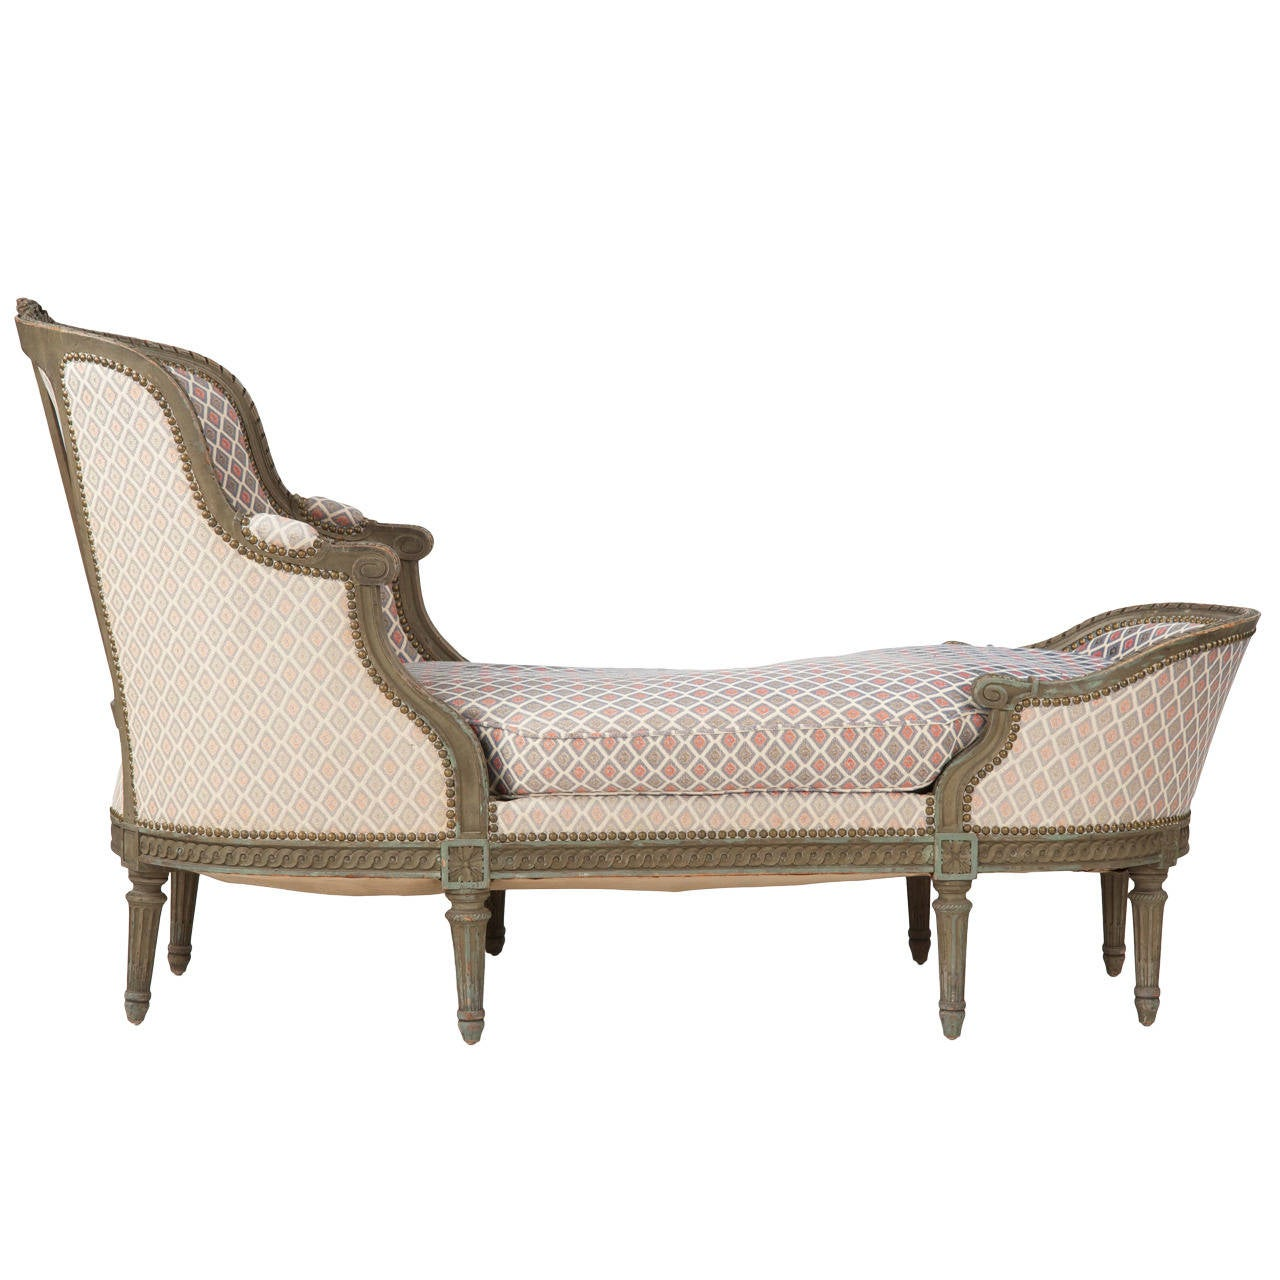 French louis xvi style painted antique chaise lounge for Chaise and lounge